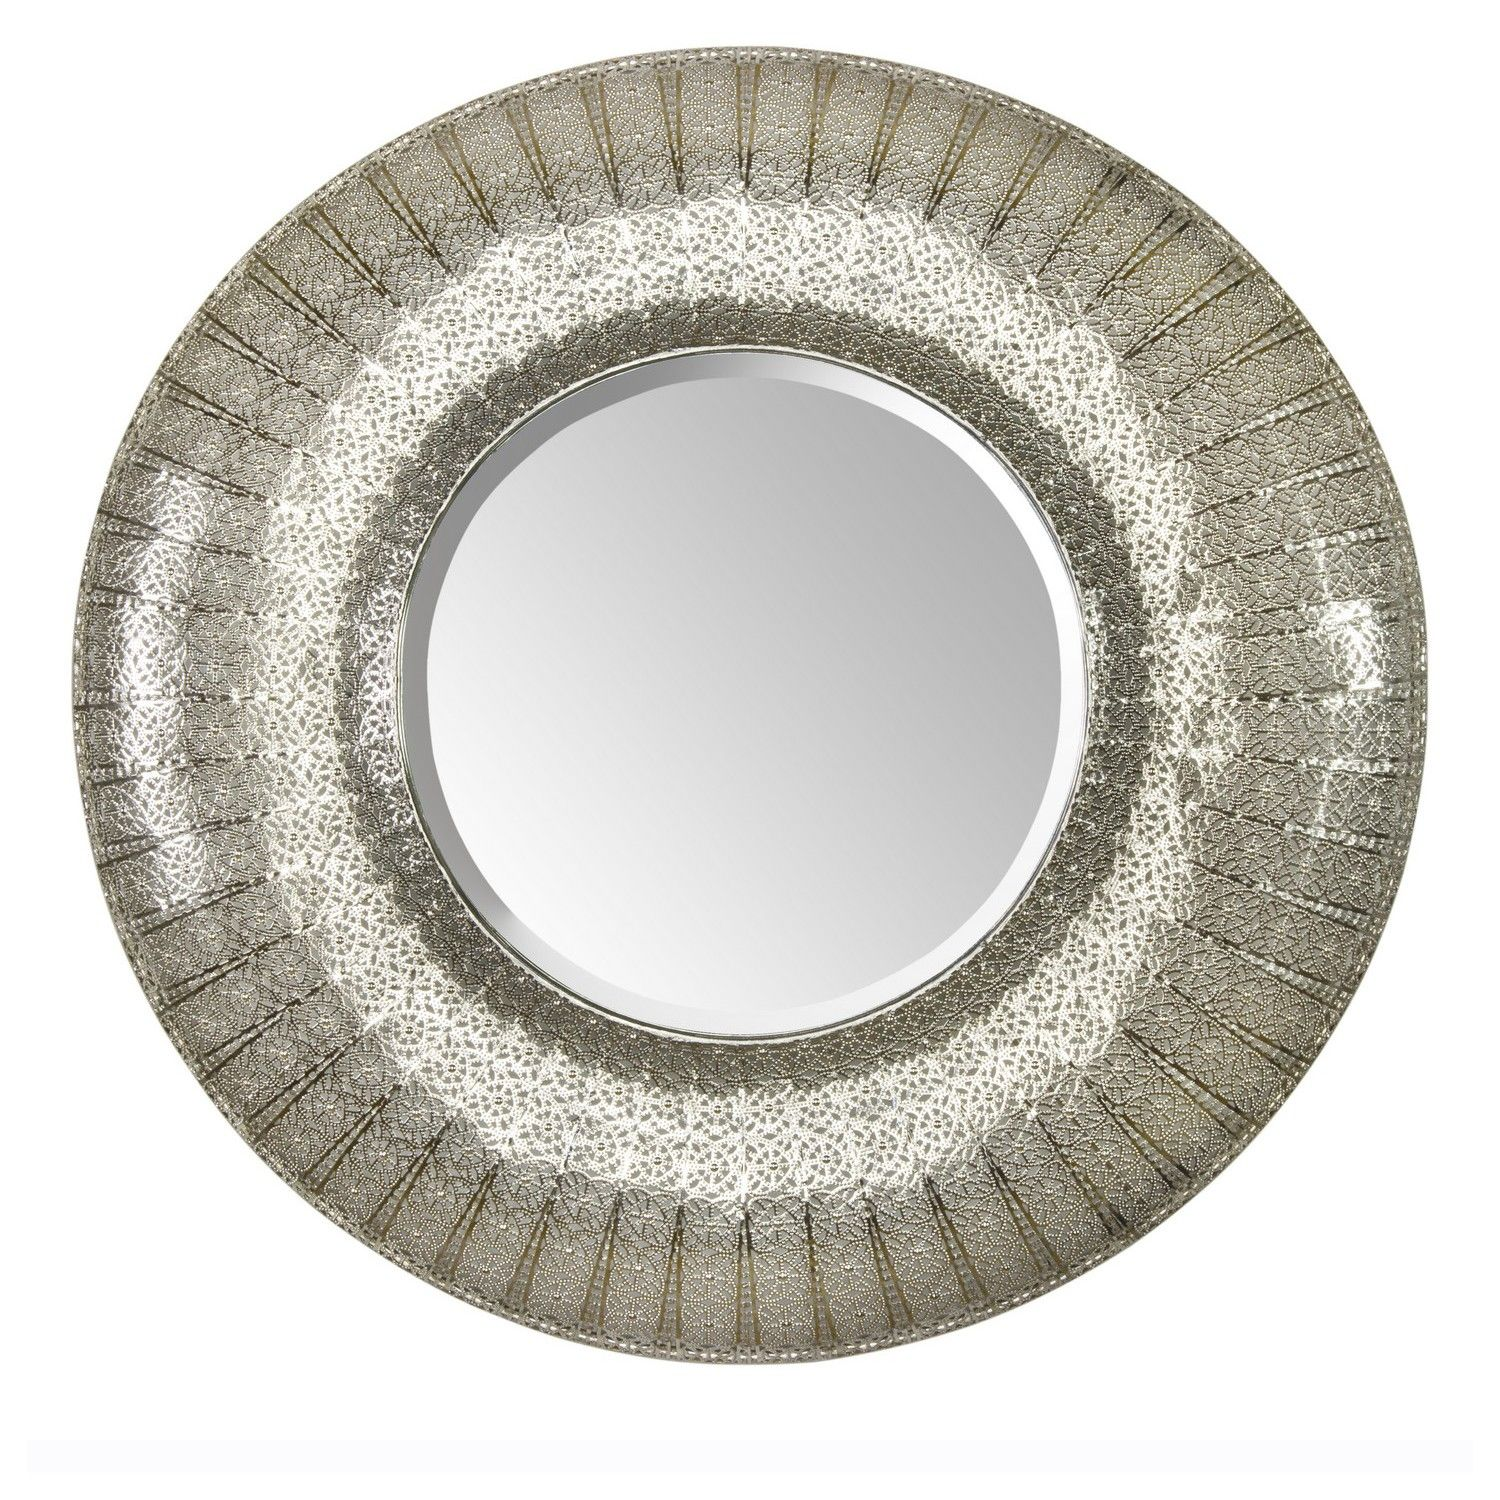 Buy Round Mirror Buy Round Moroccan Mirror Mirrors The Range Bathroom